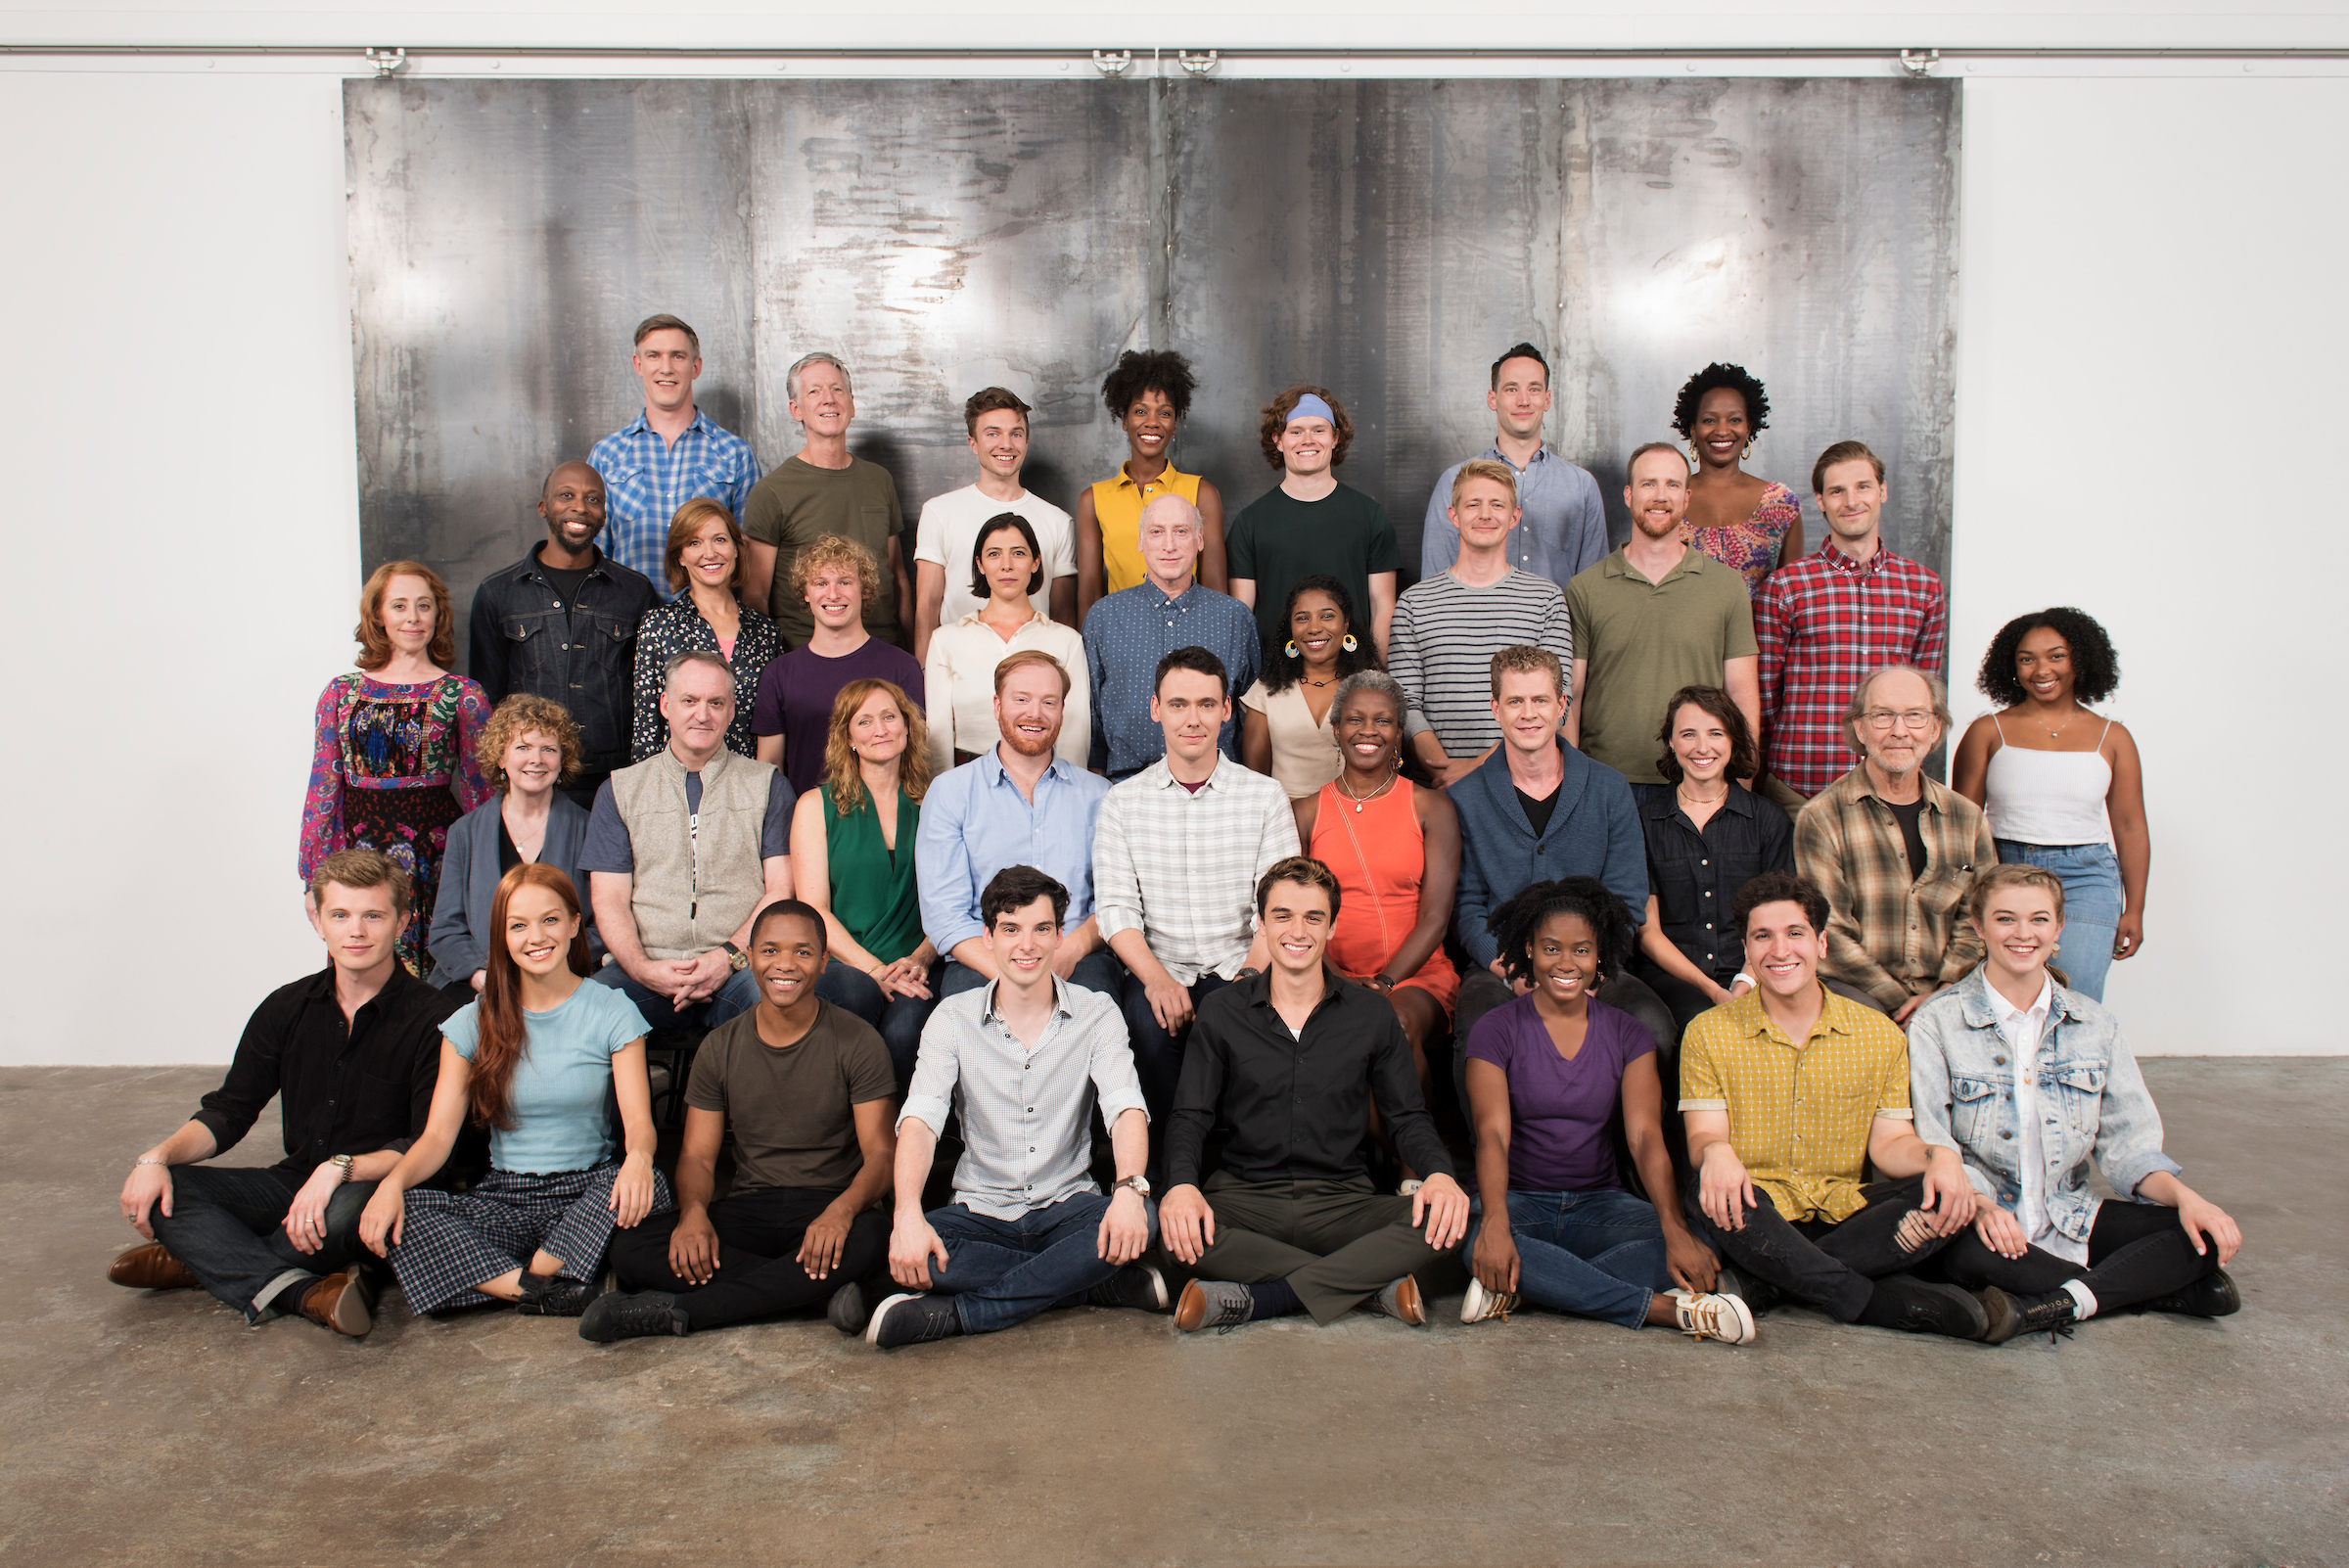 The San Francisco cast of Harry Potter and the Cursed Child